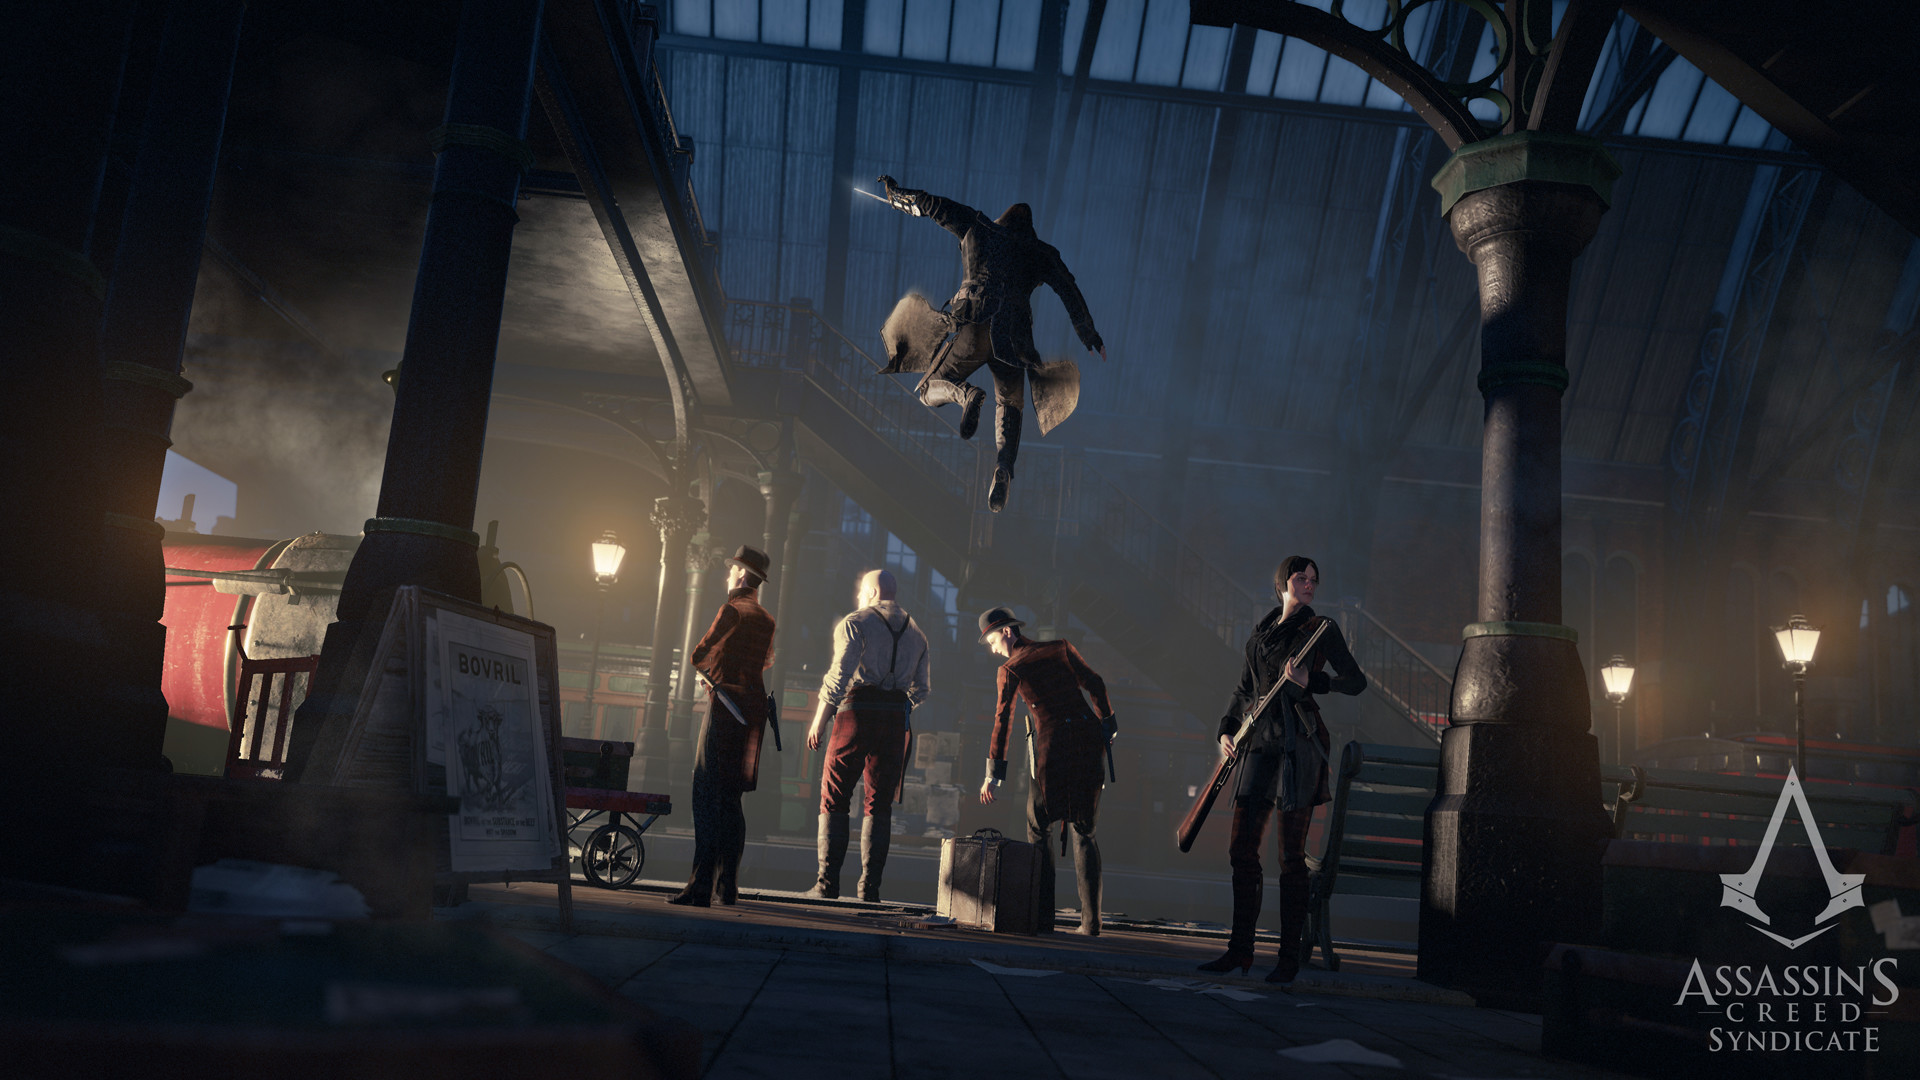 1920x1080 Pictures of Assassin's Creed: Syndicate